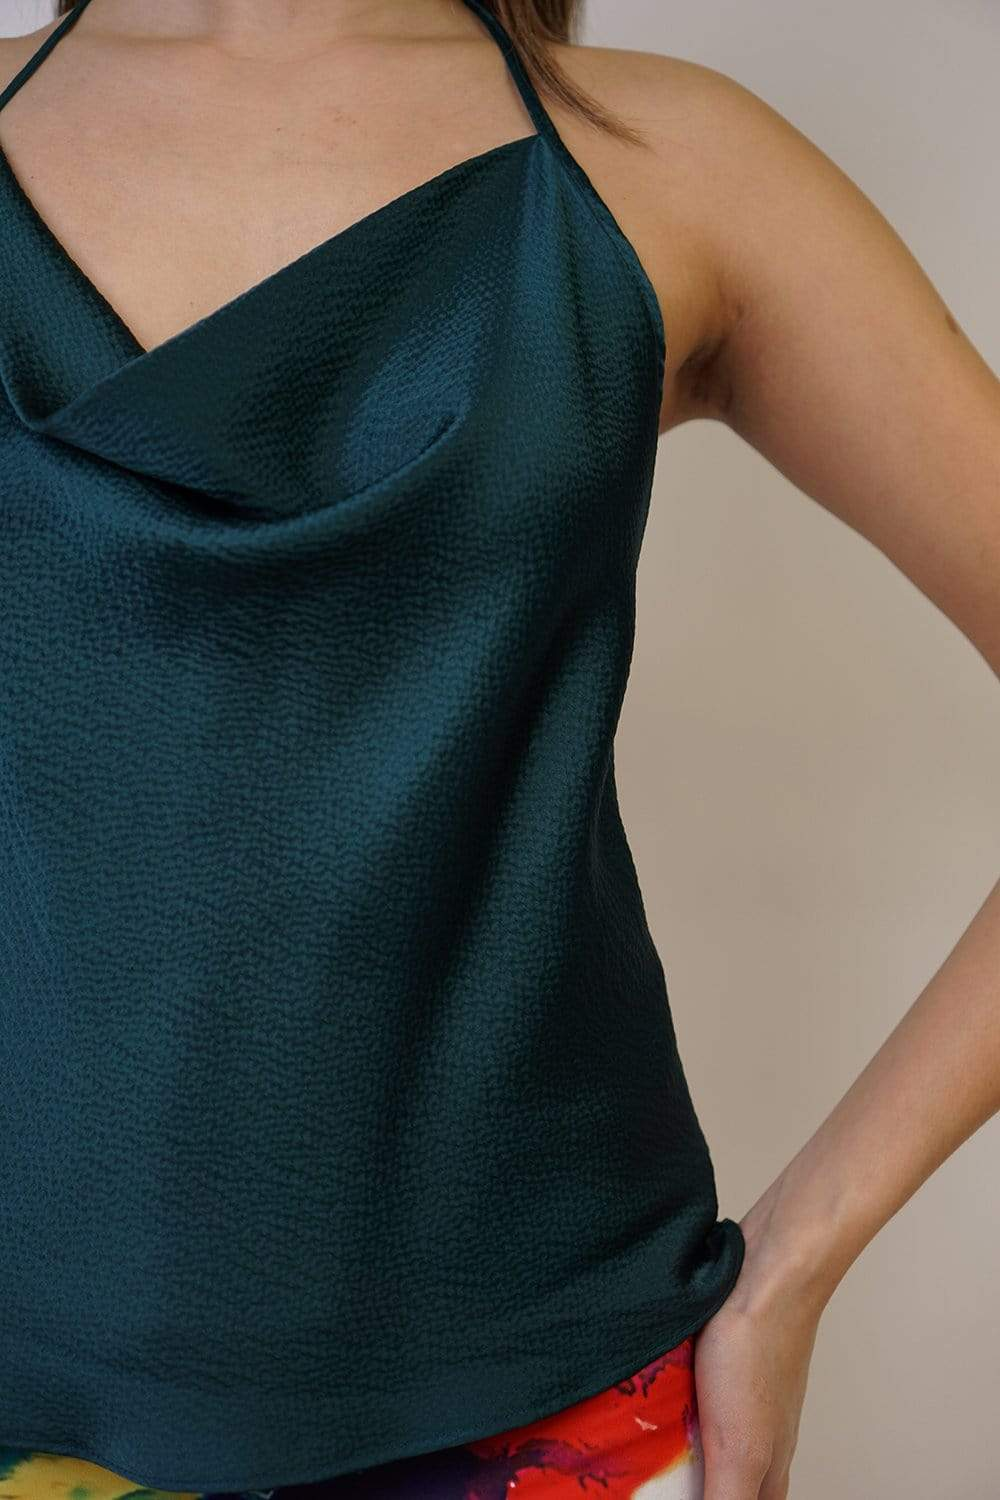 TOP Colina Silk Teal - Chloe Dao